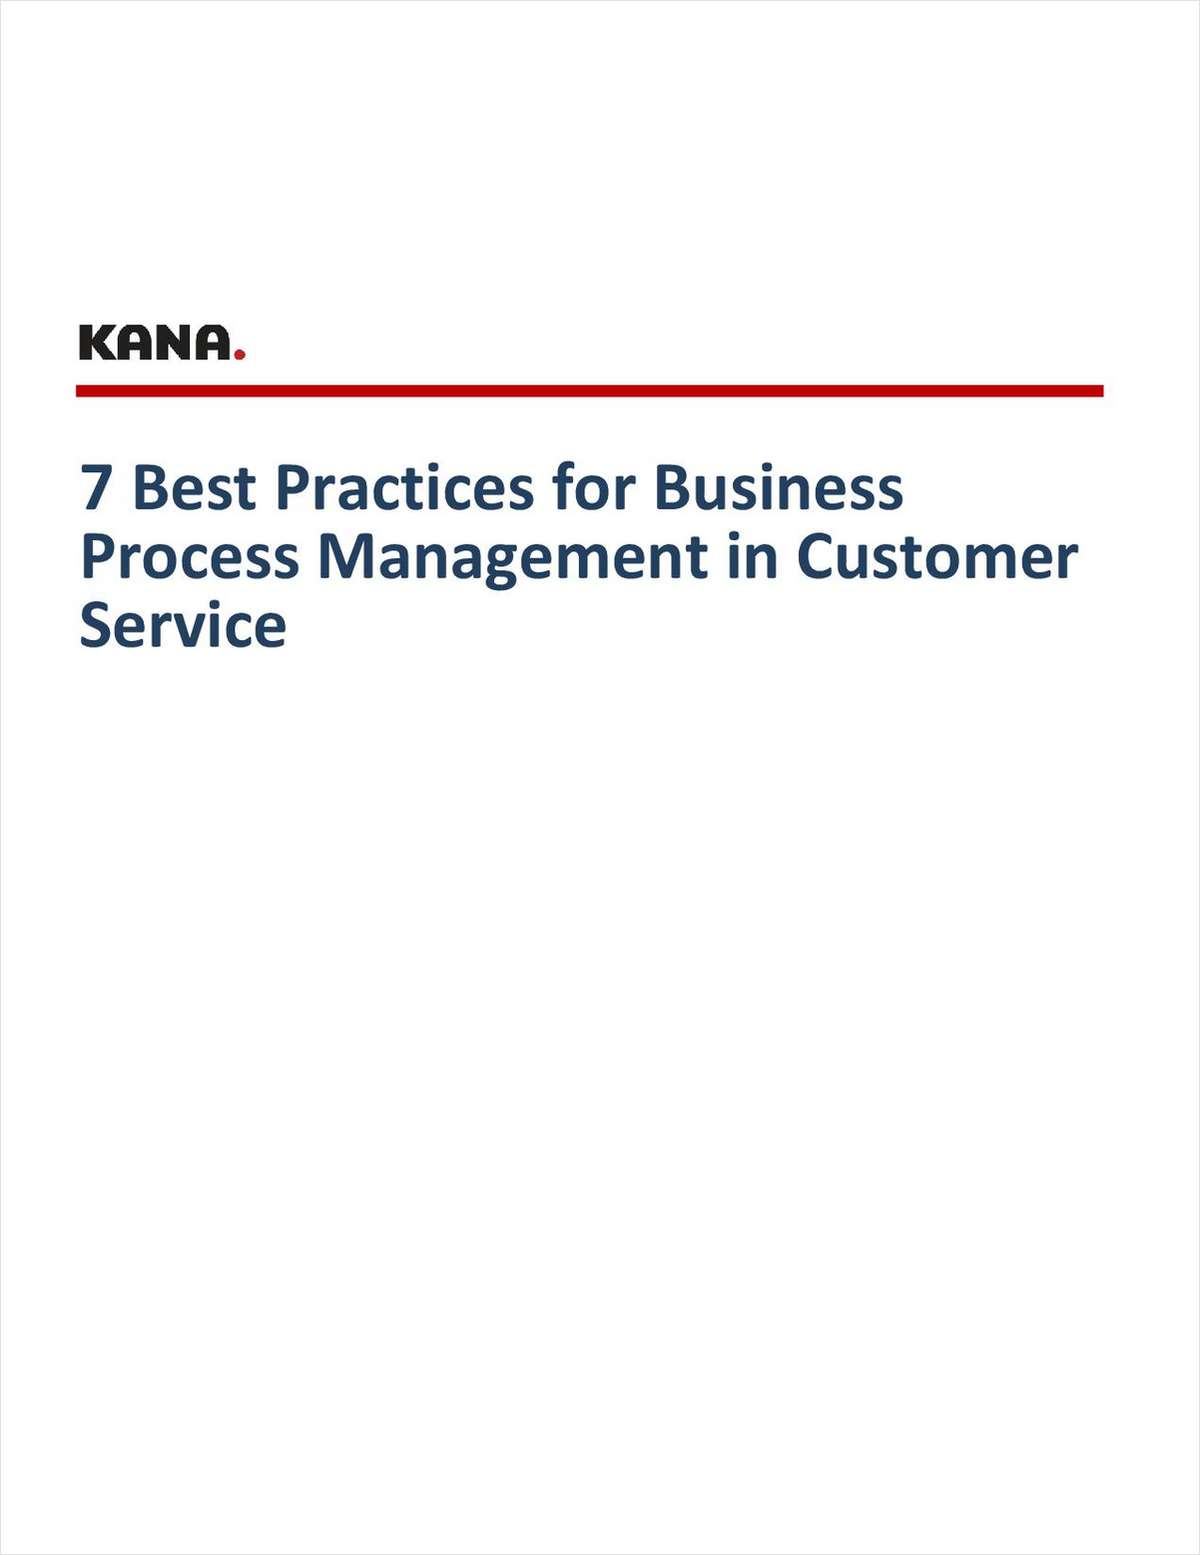 7 Best Practices for Business Process Management in Customer Service